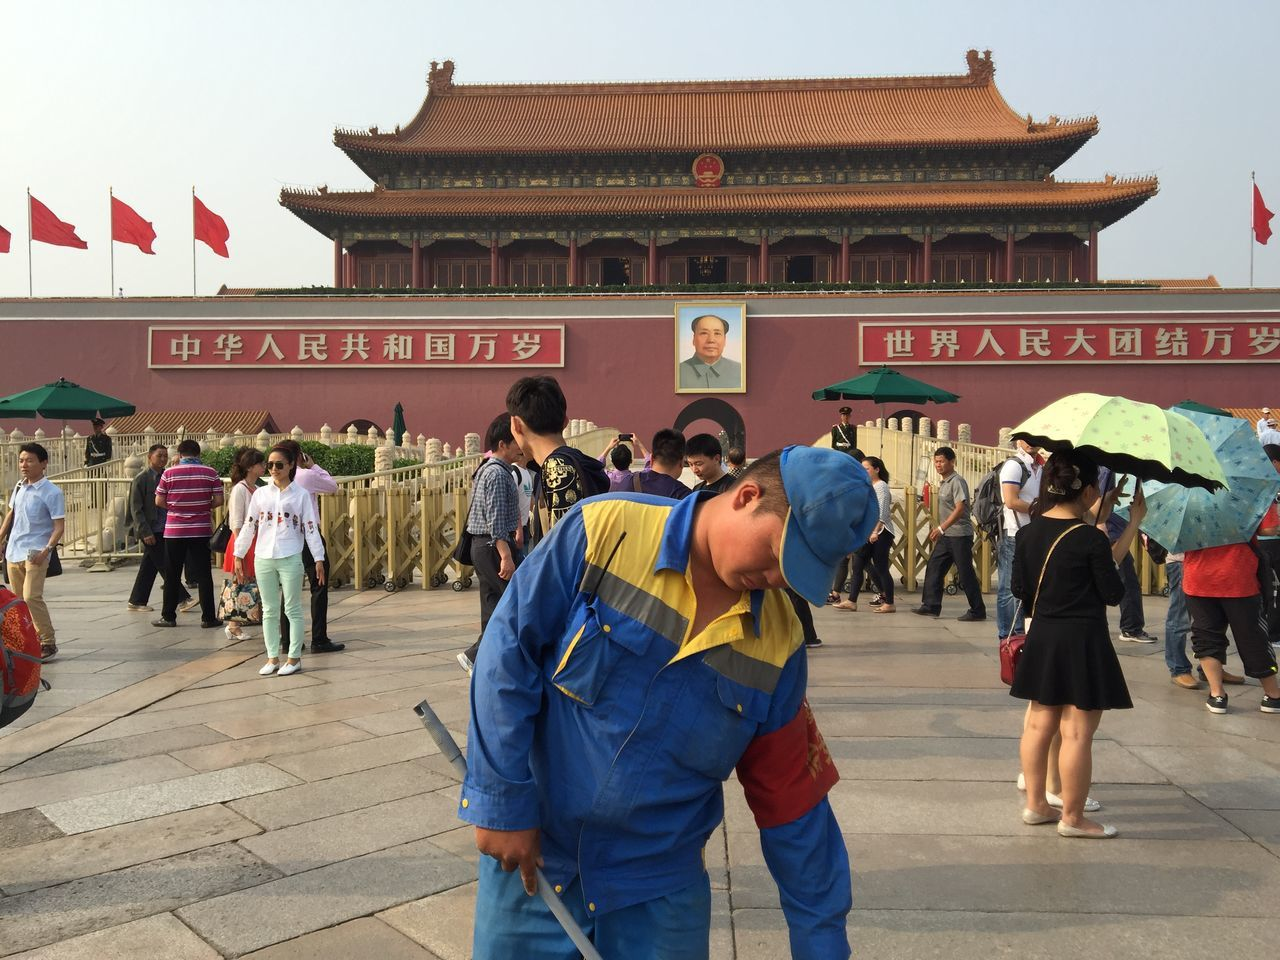 Beijing China Cleaner Composition Culture Forbidden City History Mao Mao Zedong Old Peking  Perspective Portrait Realism Tourists The Week On EyeEm